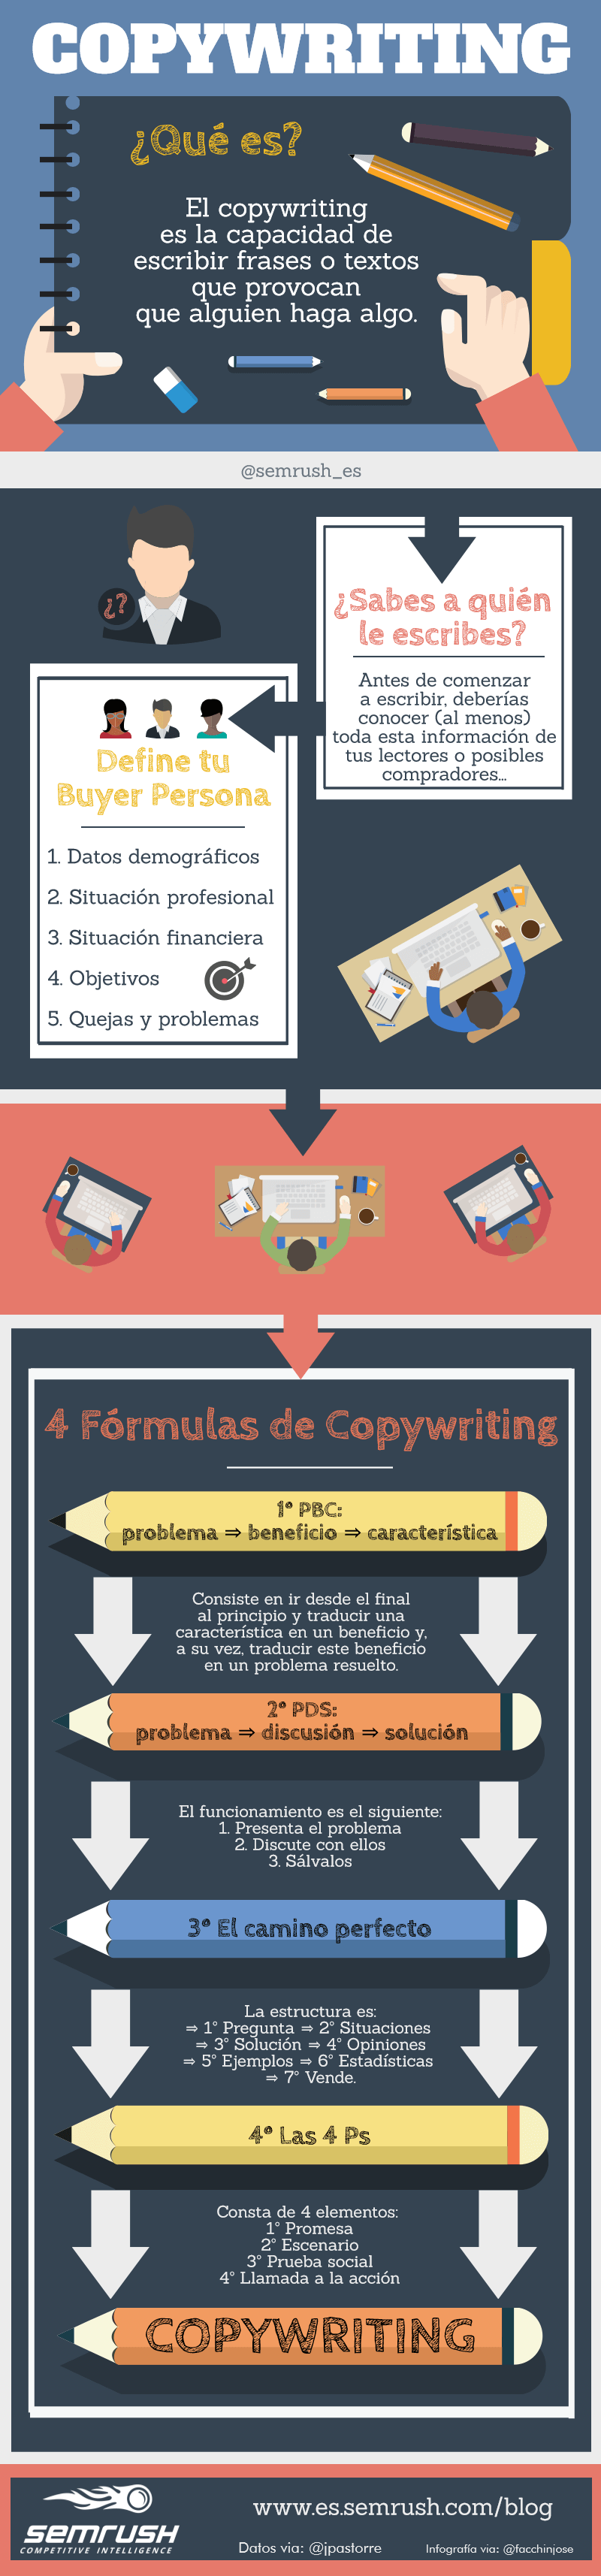 4 fórmulas de copywriting para conseguir lectores y ventas #infografia #infographic #marketing